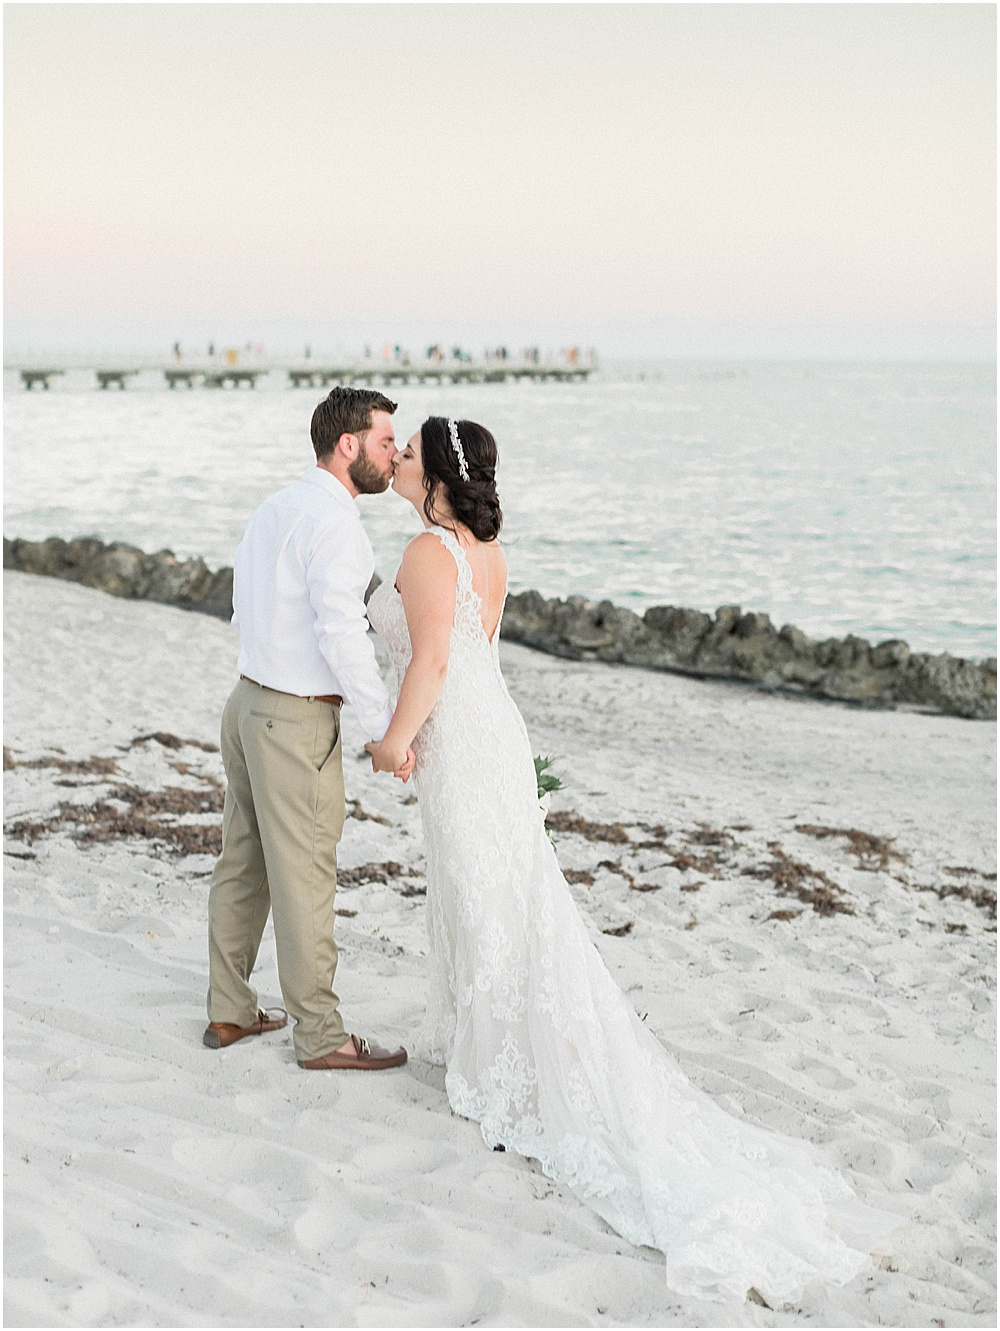 casa_marina_key_west_florida_destination_palm_trees_boston_wedding_photographer_meredith_jane_photography_photo_0111.jpg